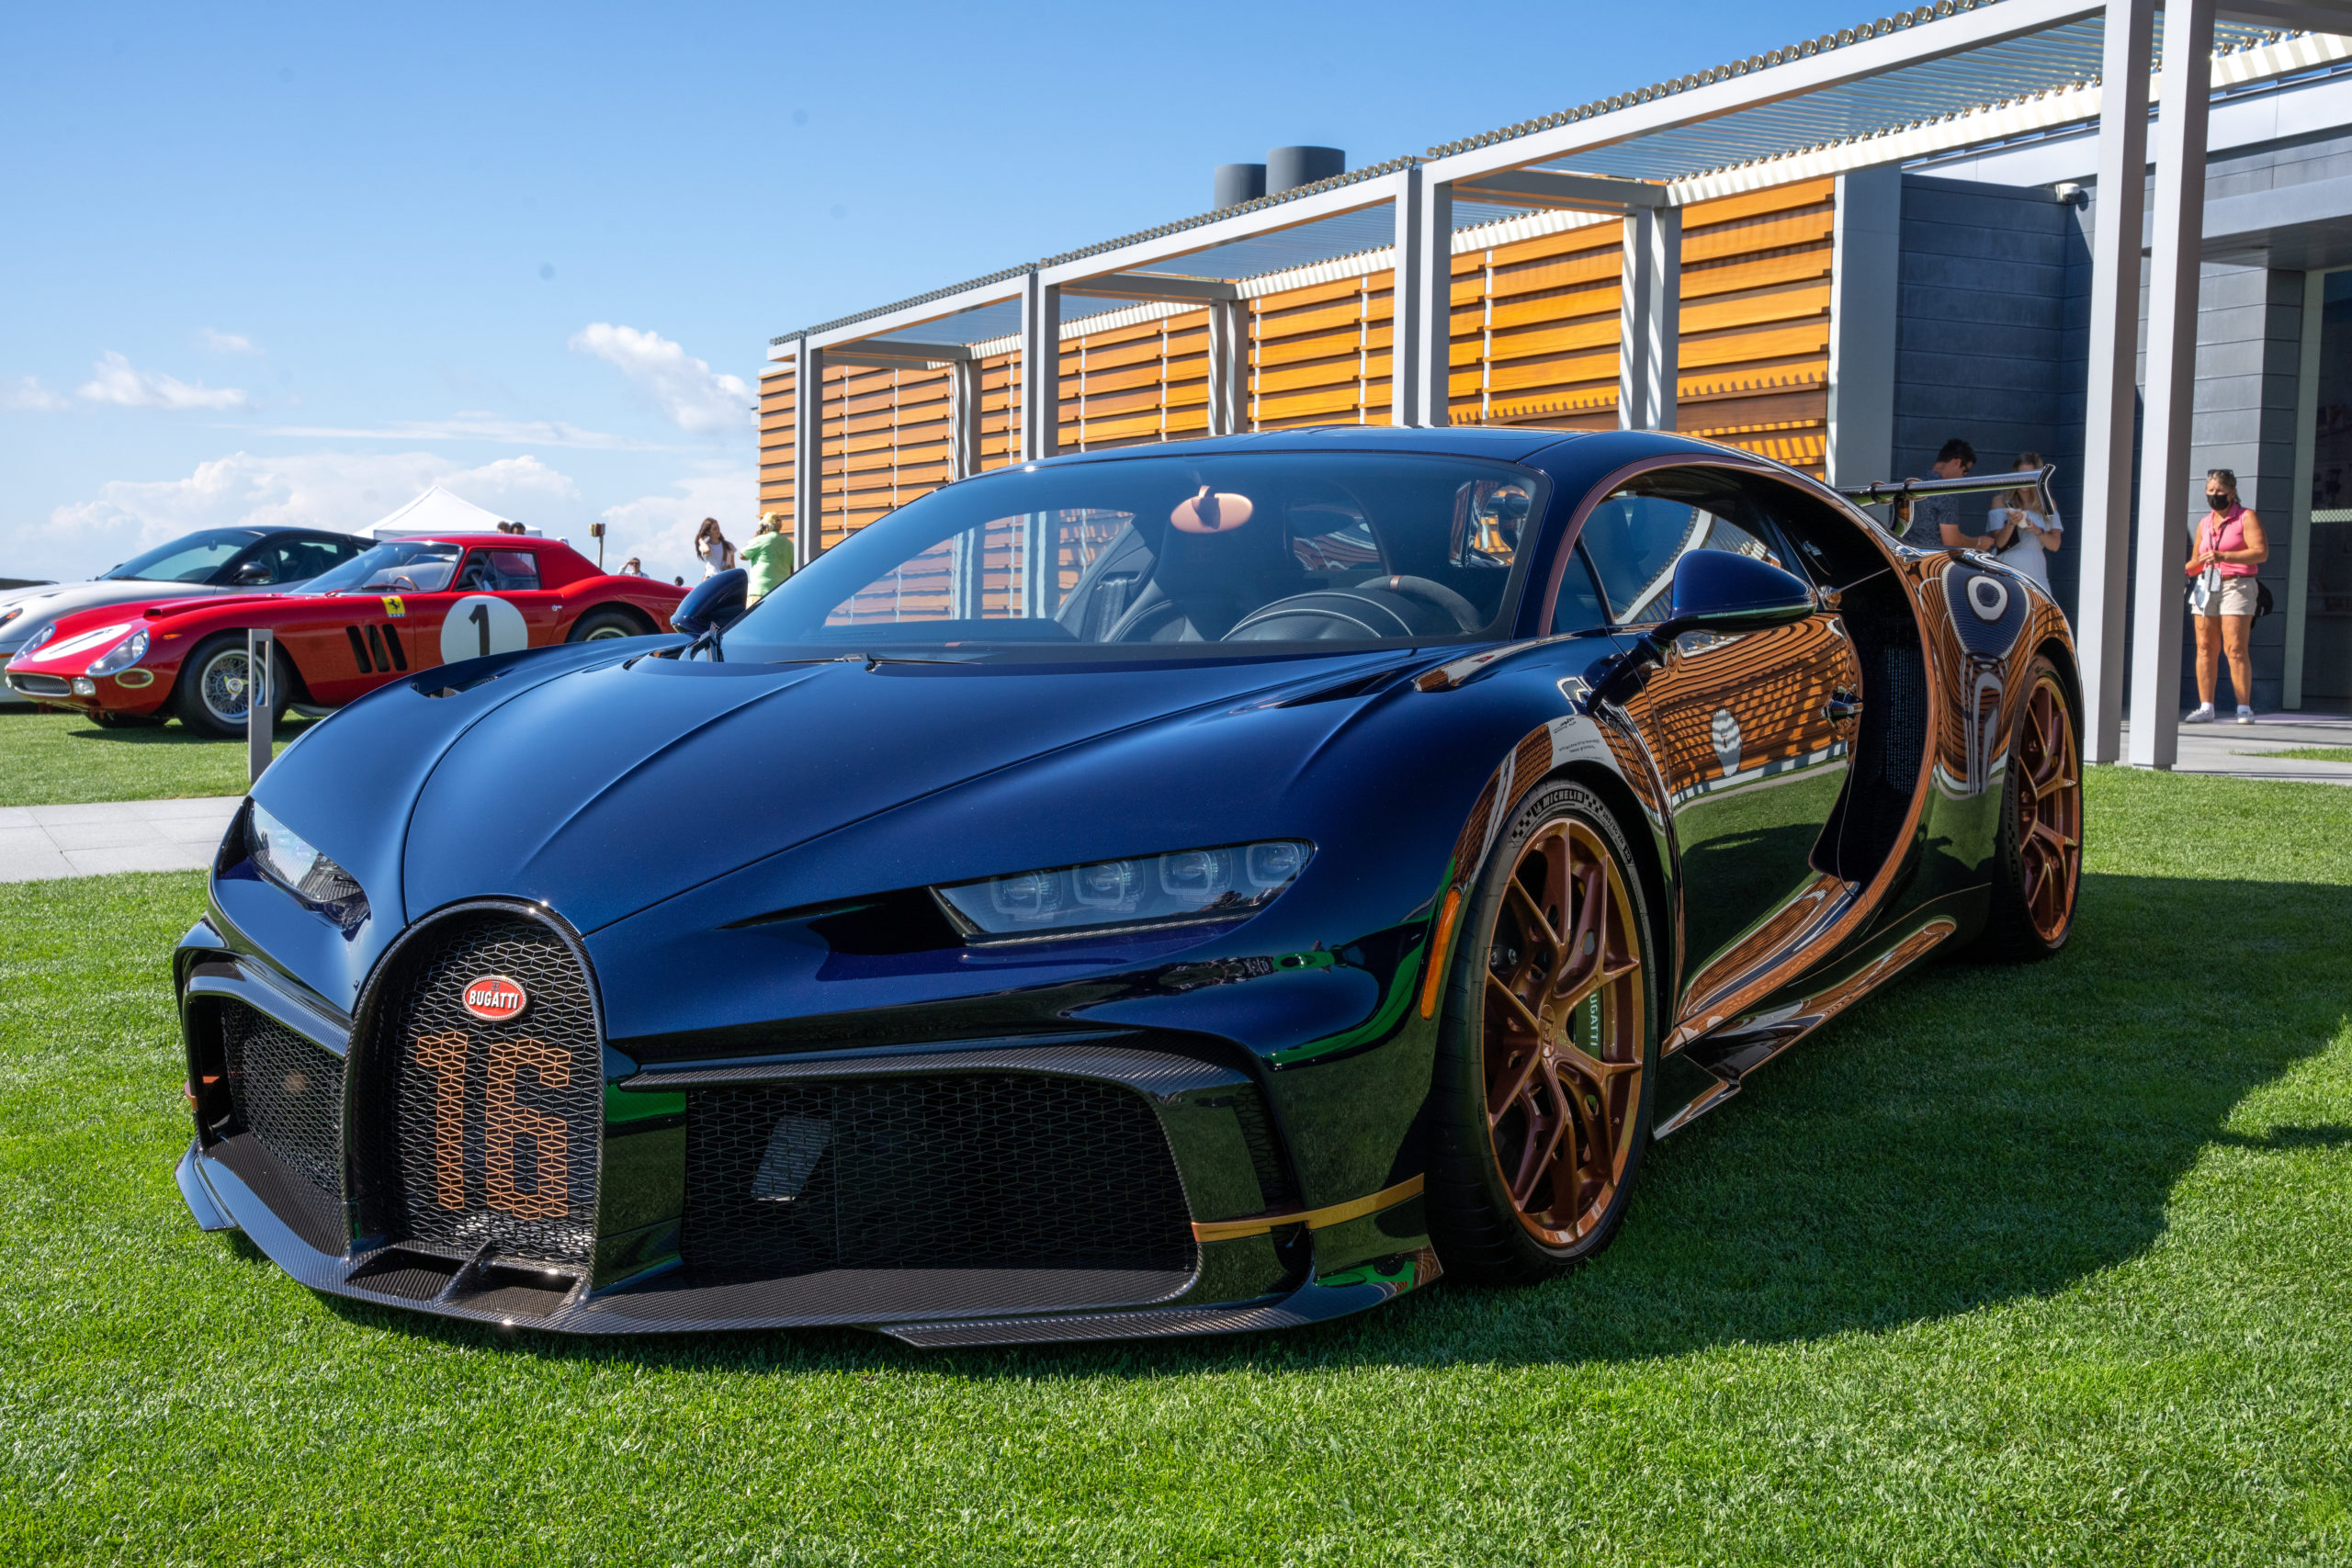 There were several Bugati's on display on Saturday, three of which were at the entrance of The Bridge.